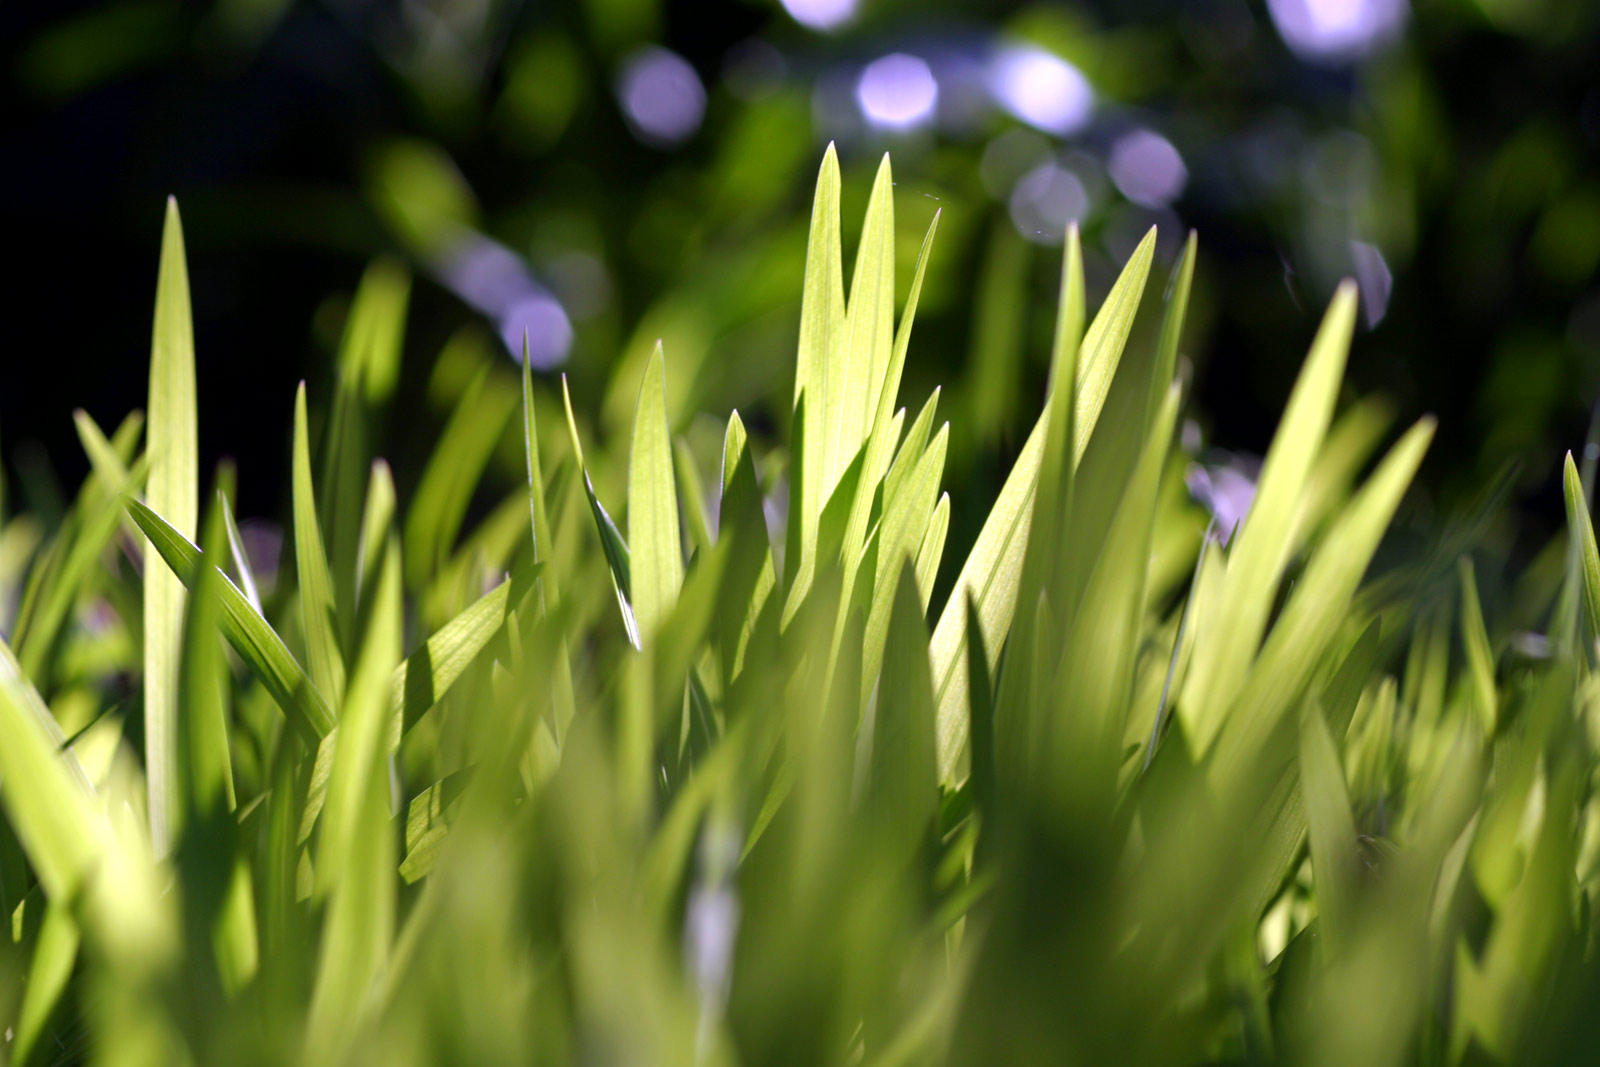 Backlit grass by fl8us-stock